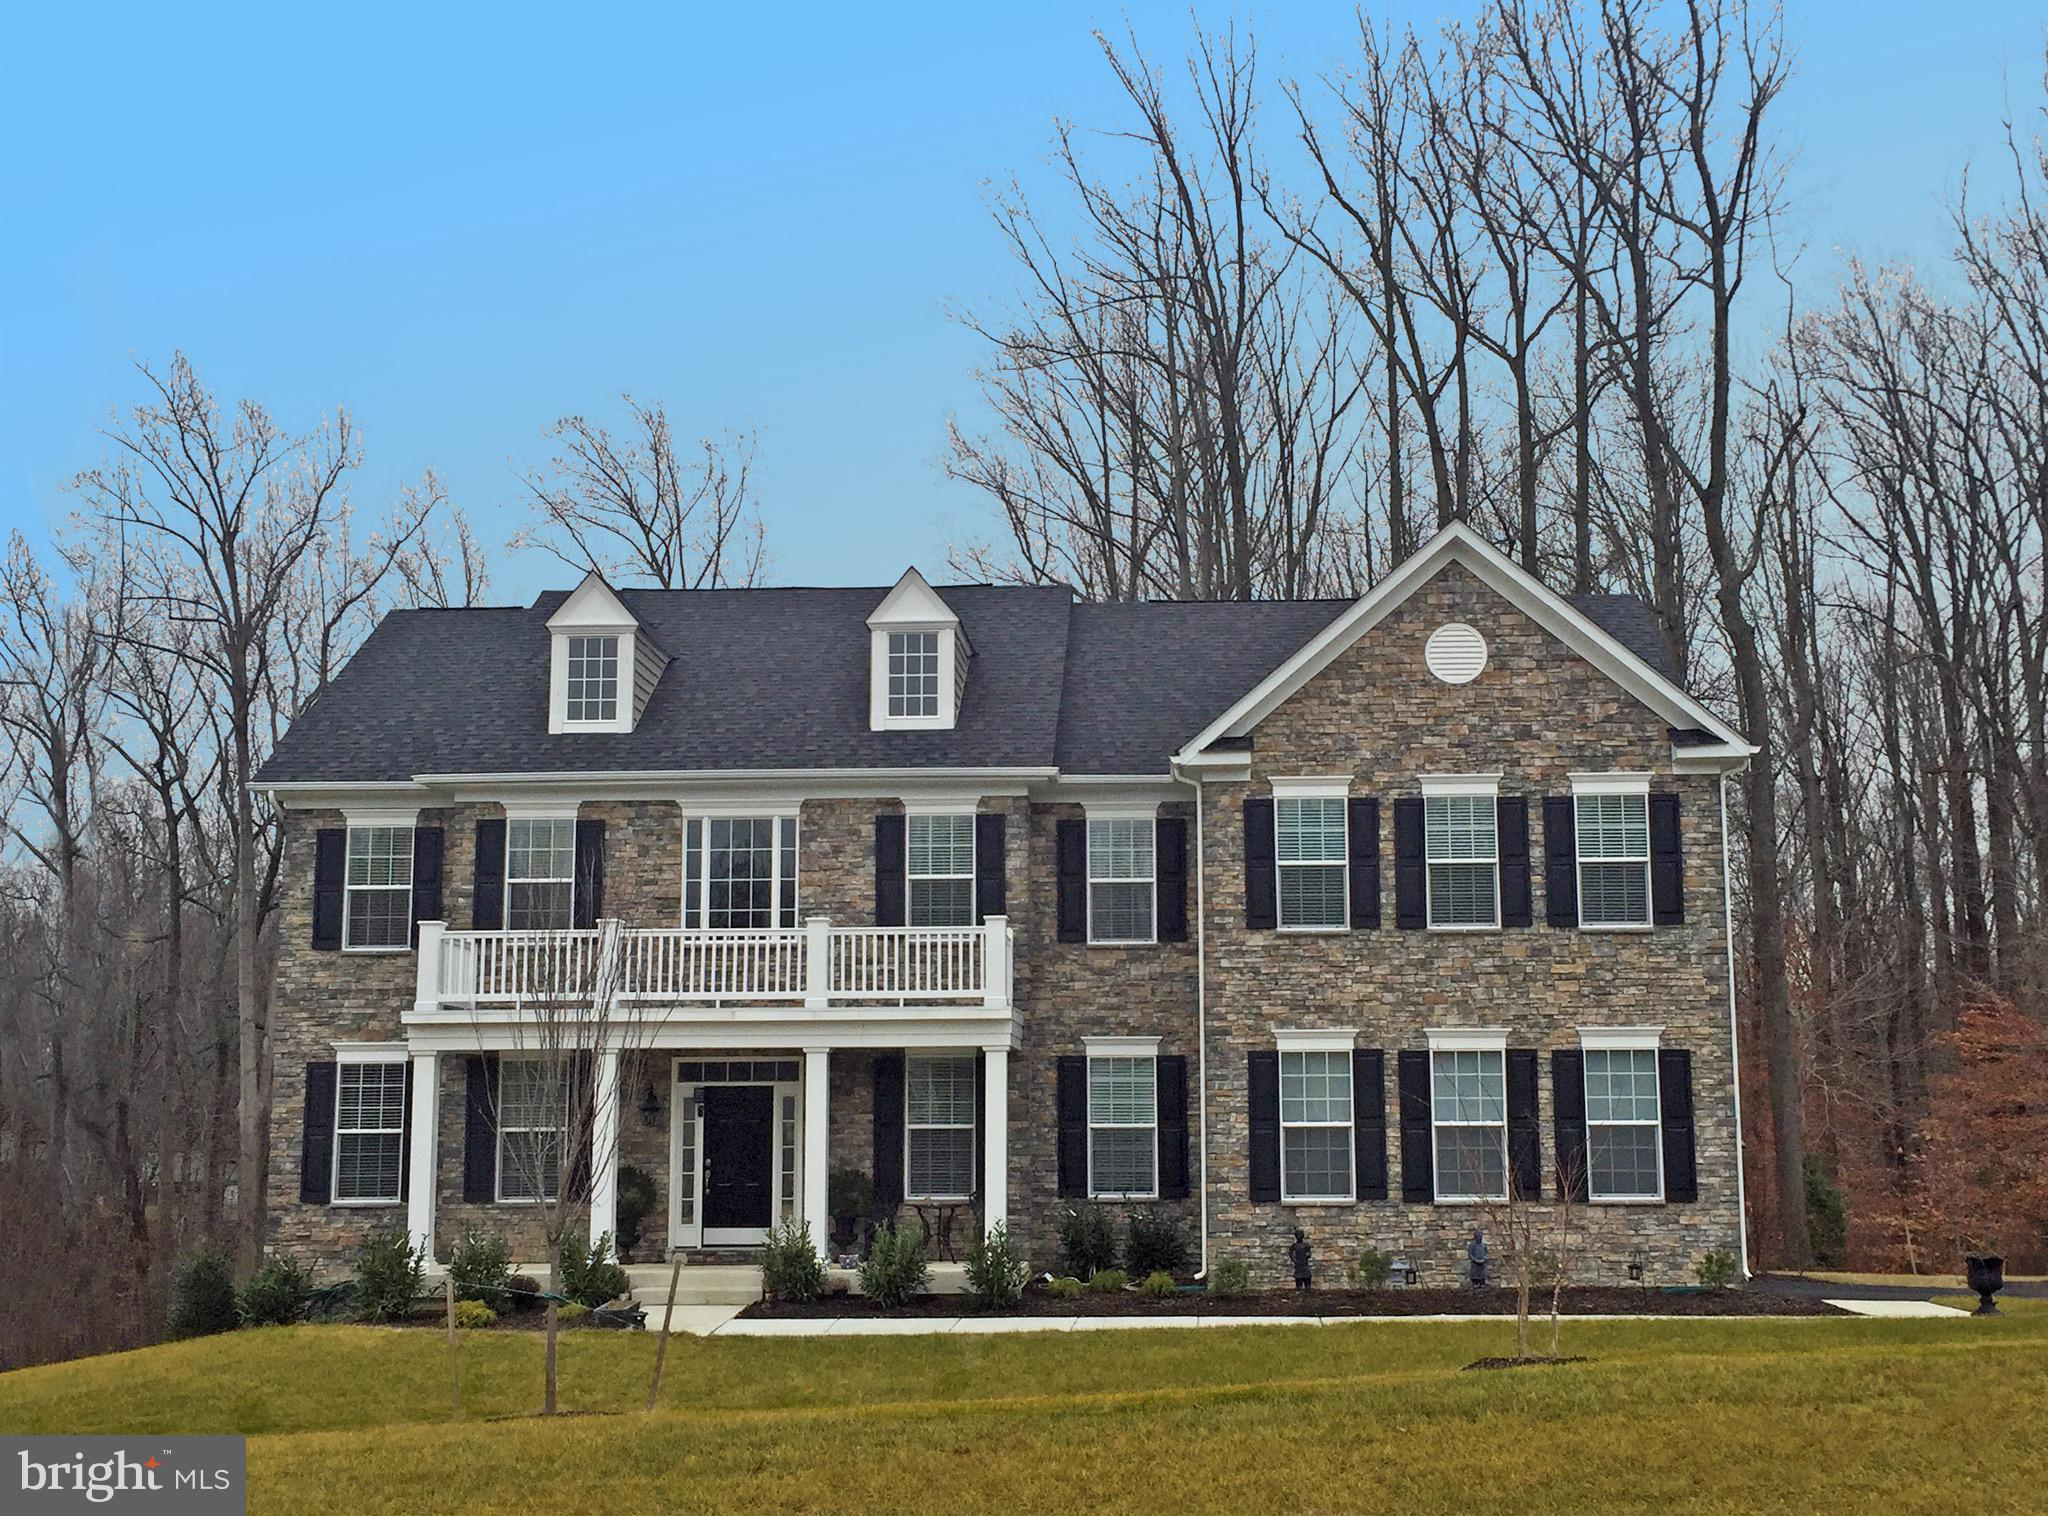 1735 UNDERWOOD ROAD, SYKESVILLE, MD 21784